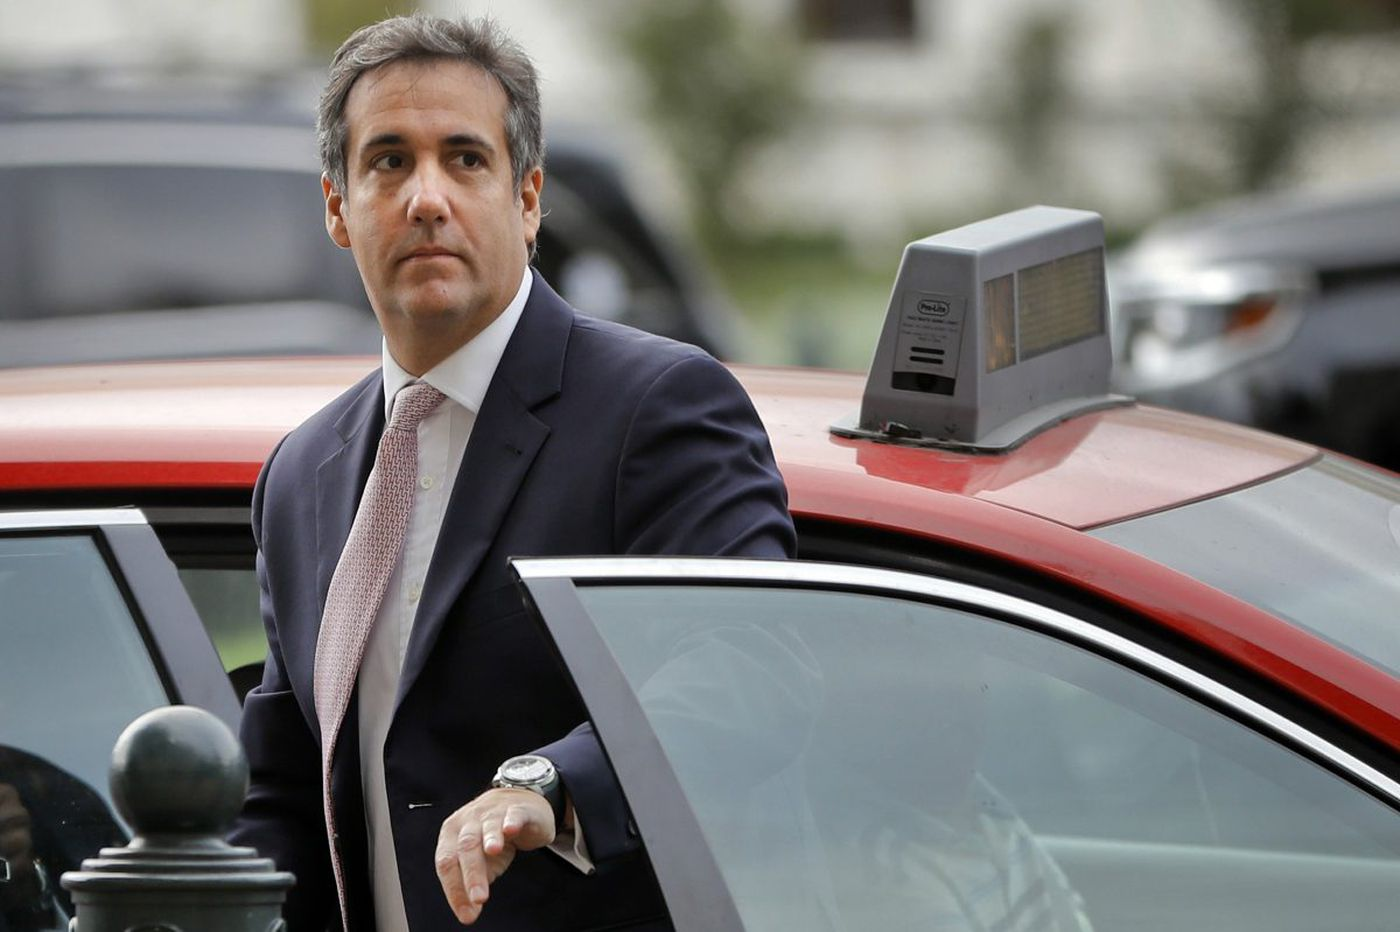 Michael Cohen's business partner pleads guilty in criminal investigation involving Philadelphia